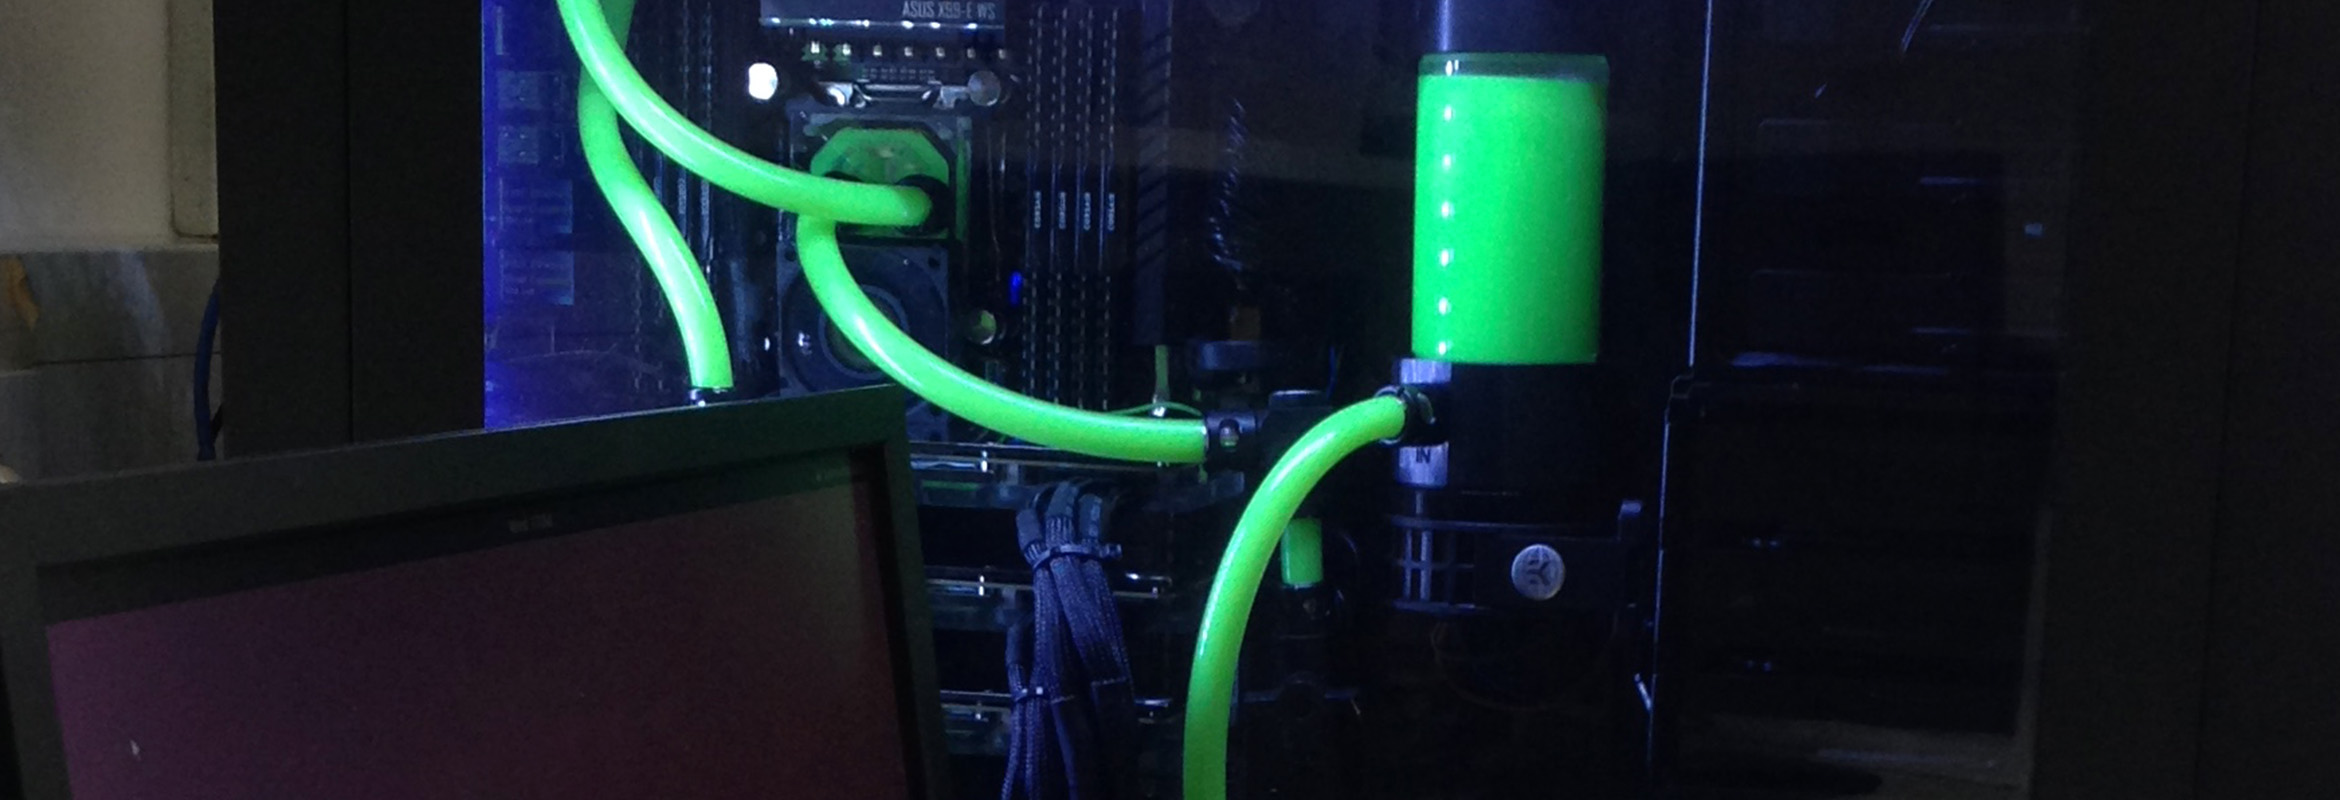 A GPU system for our cryo-EM work: of course the coolant had to be green.